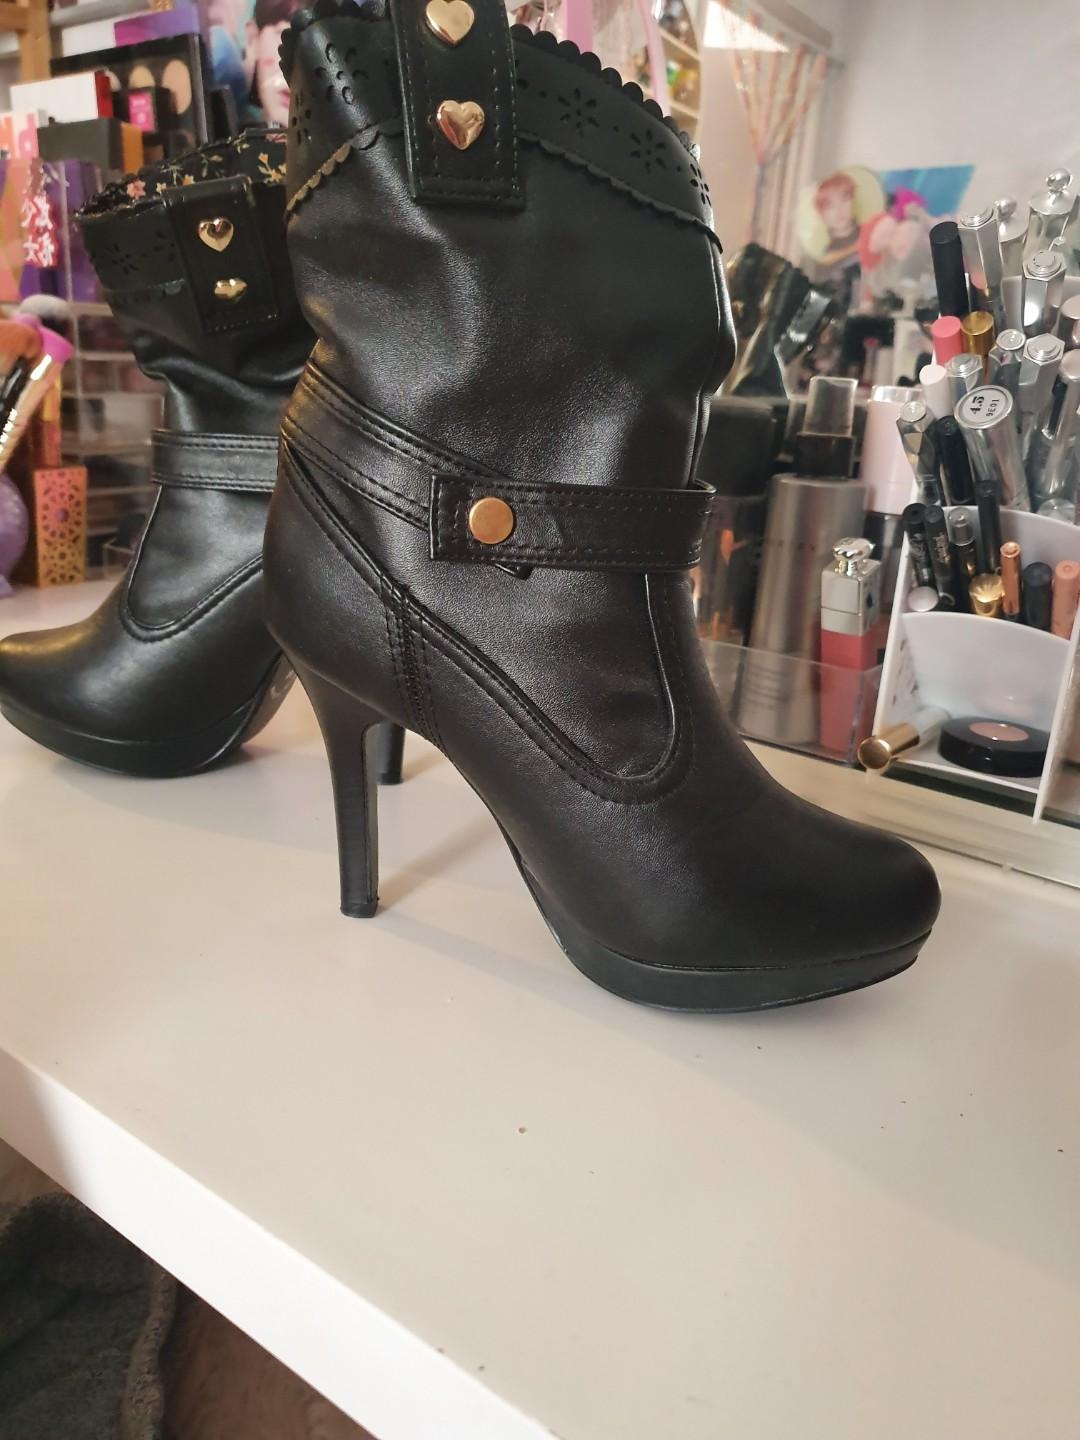 Size AU 6 / EUR 37 / UK 4 / US 6 Women's Black Bow boot with removable strap